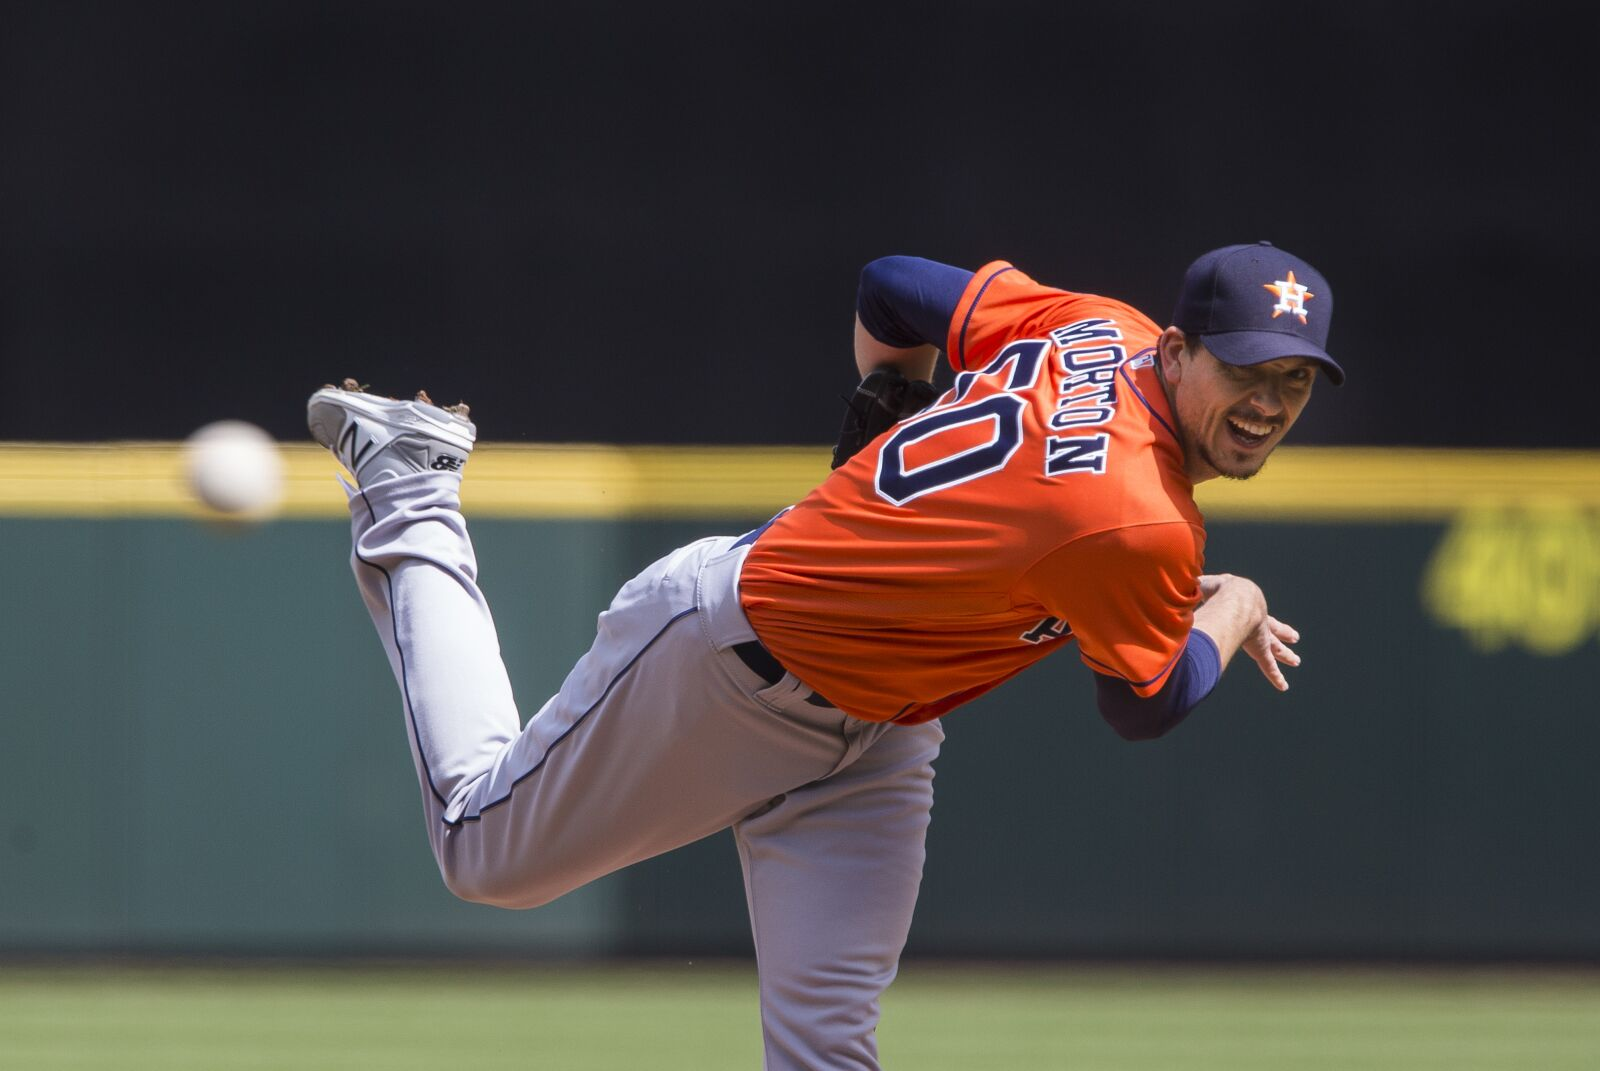 948801836-houston-astros-v-seattle-mariners.jpg